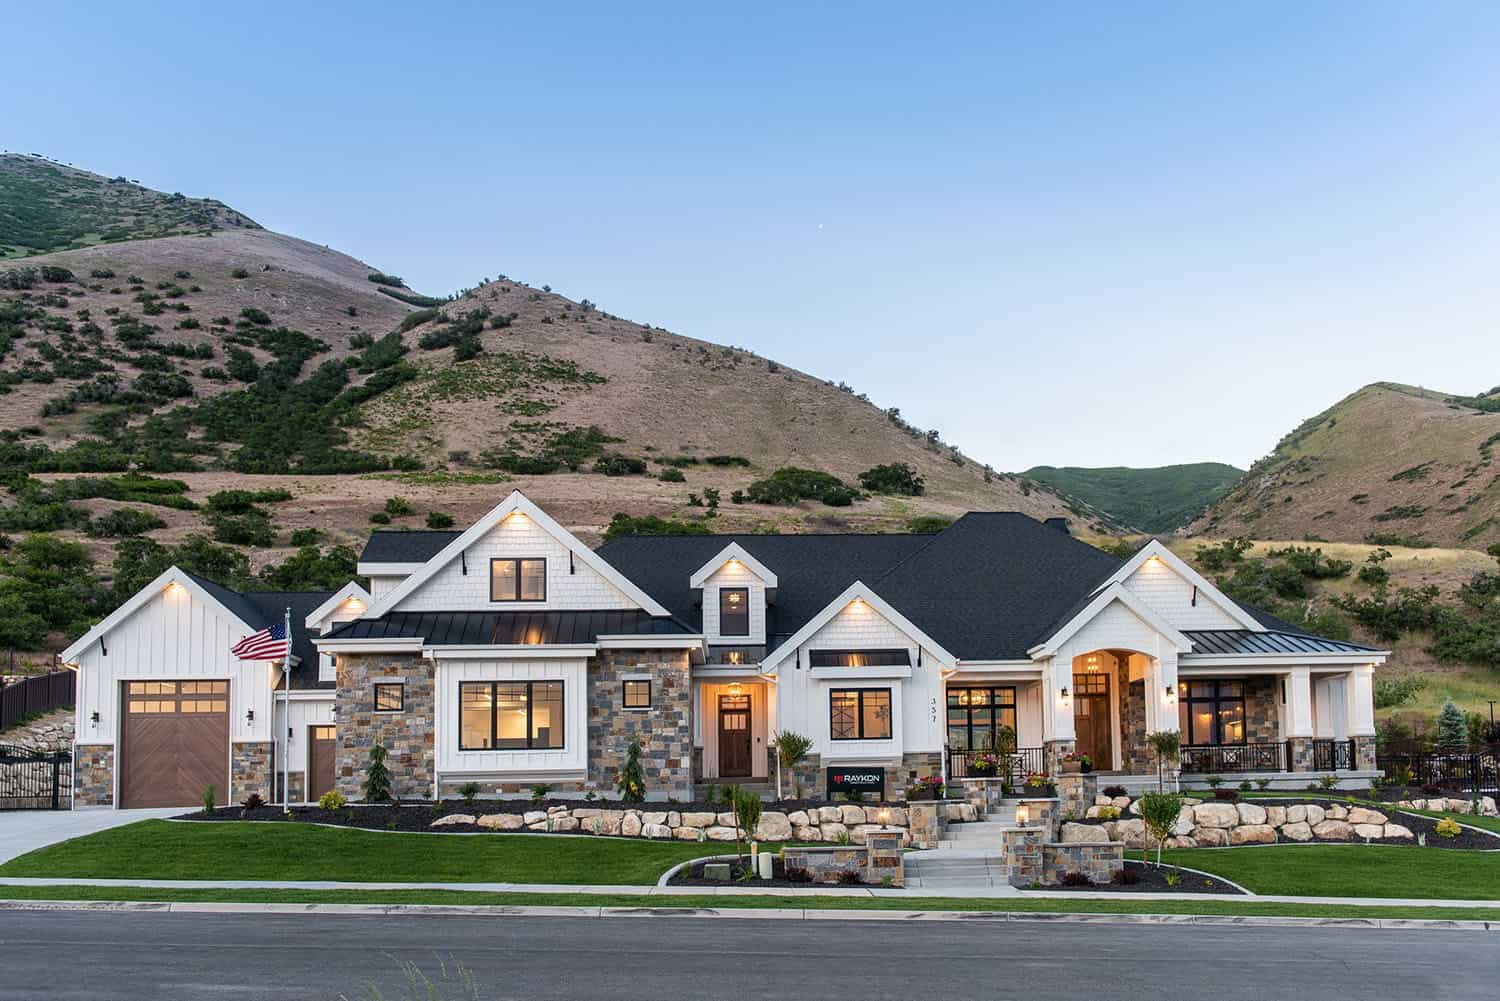 Farmhouse style dream house in Utah with a mountainous backdrop